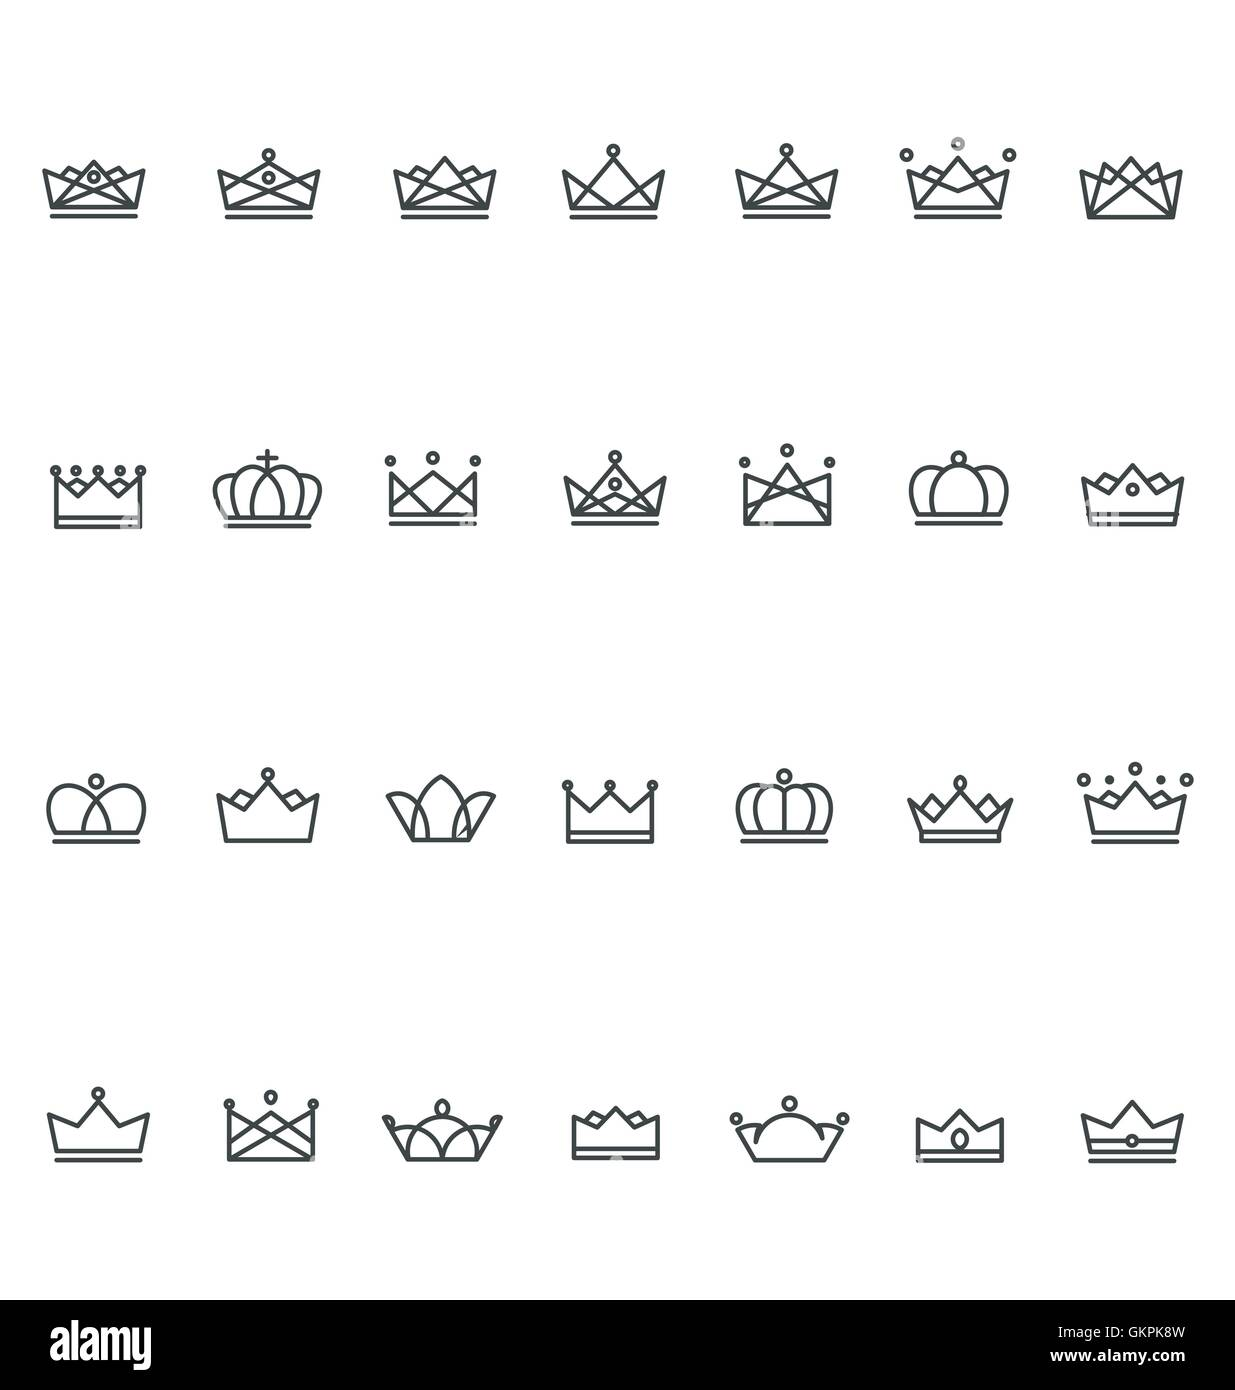 Outline Crown Icon - Stock Image